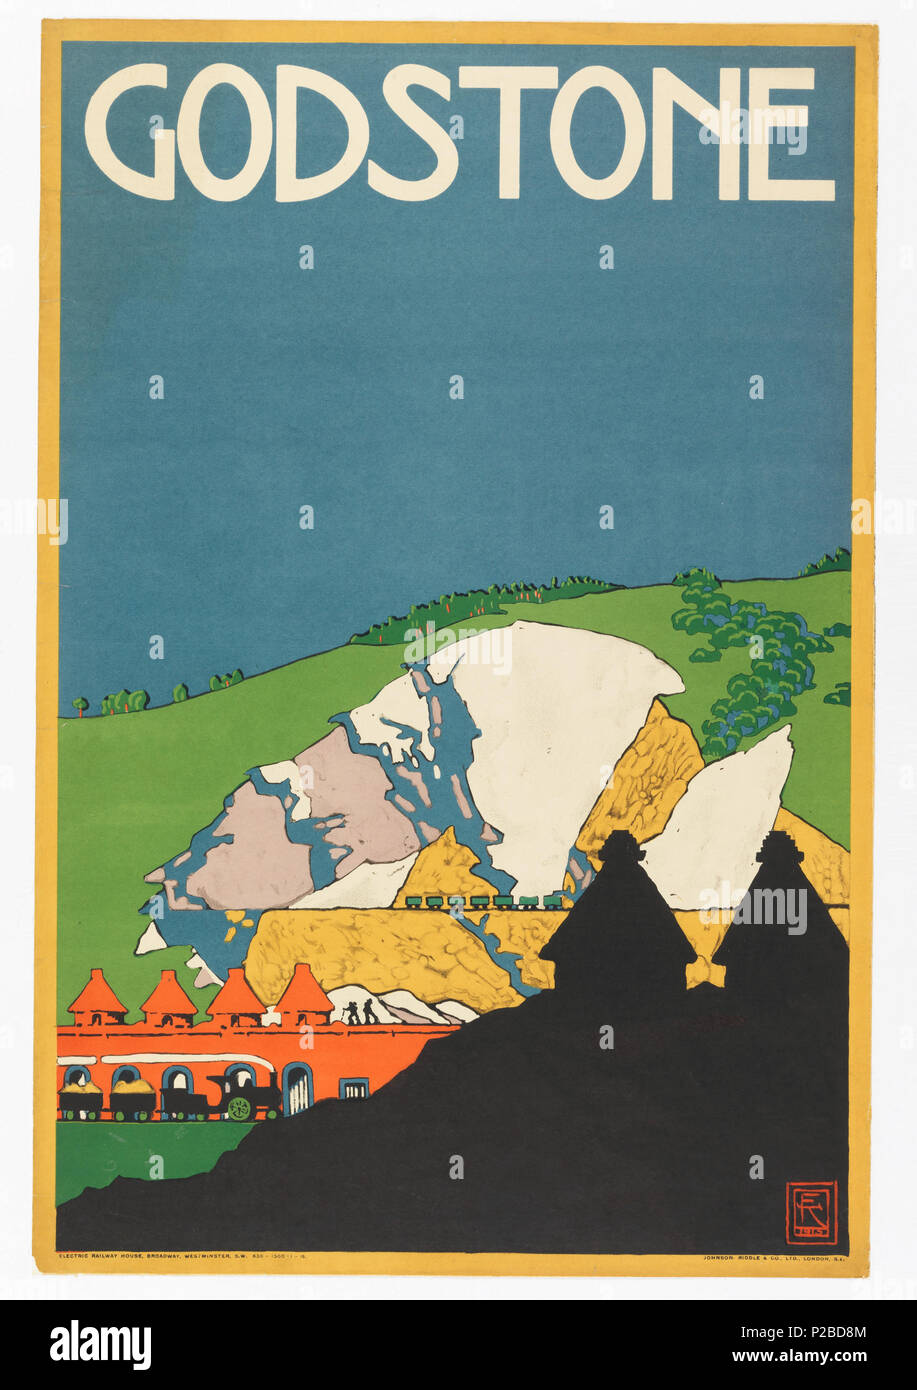 .  English: Poster, Godstone, London Underground, 1915 .  English: View of quarry with mountain in background, wagons, workers. Silhouetted building in foreground. . 1915 232 Poster, Godstone, London Underground, 1915 (CH 18447275) - Stock Image